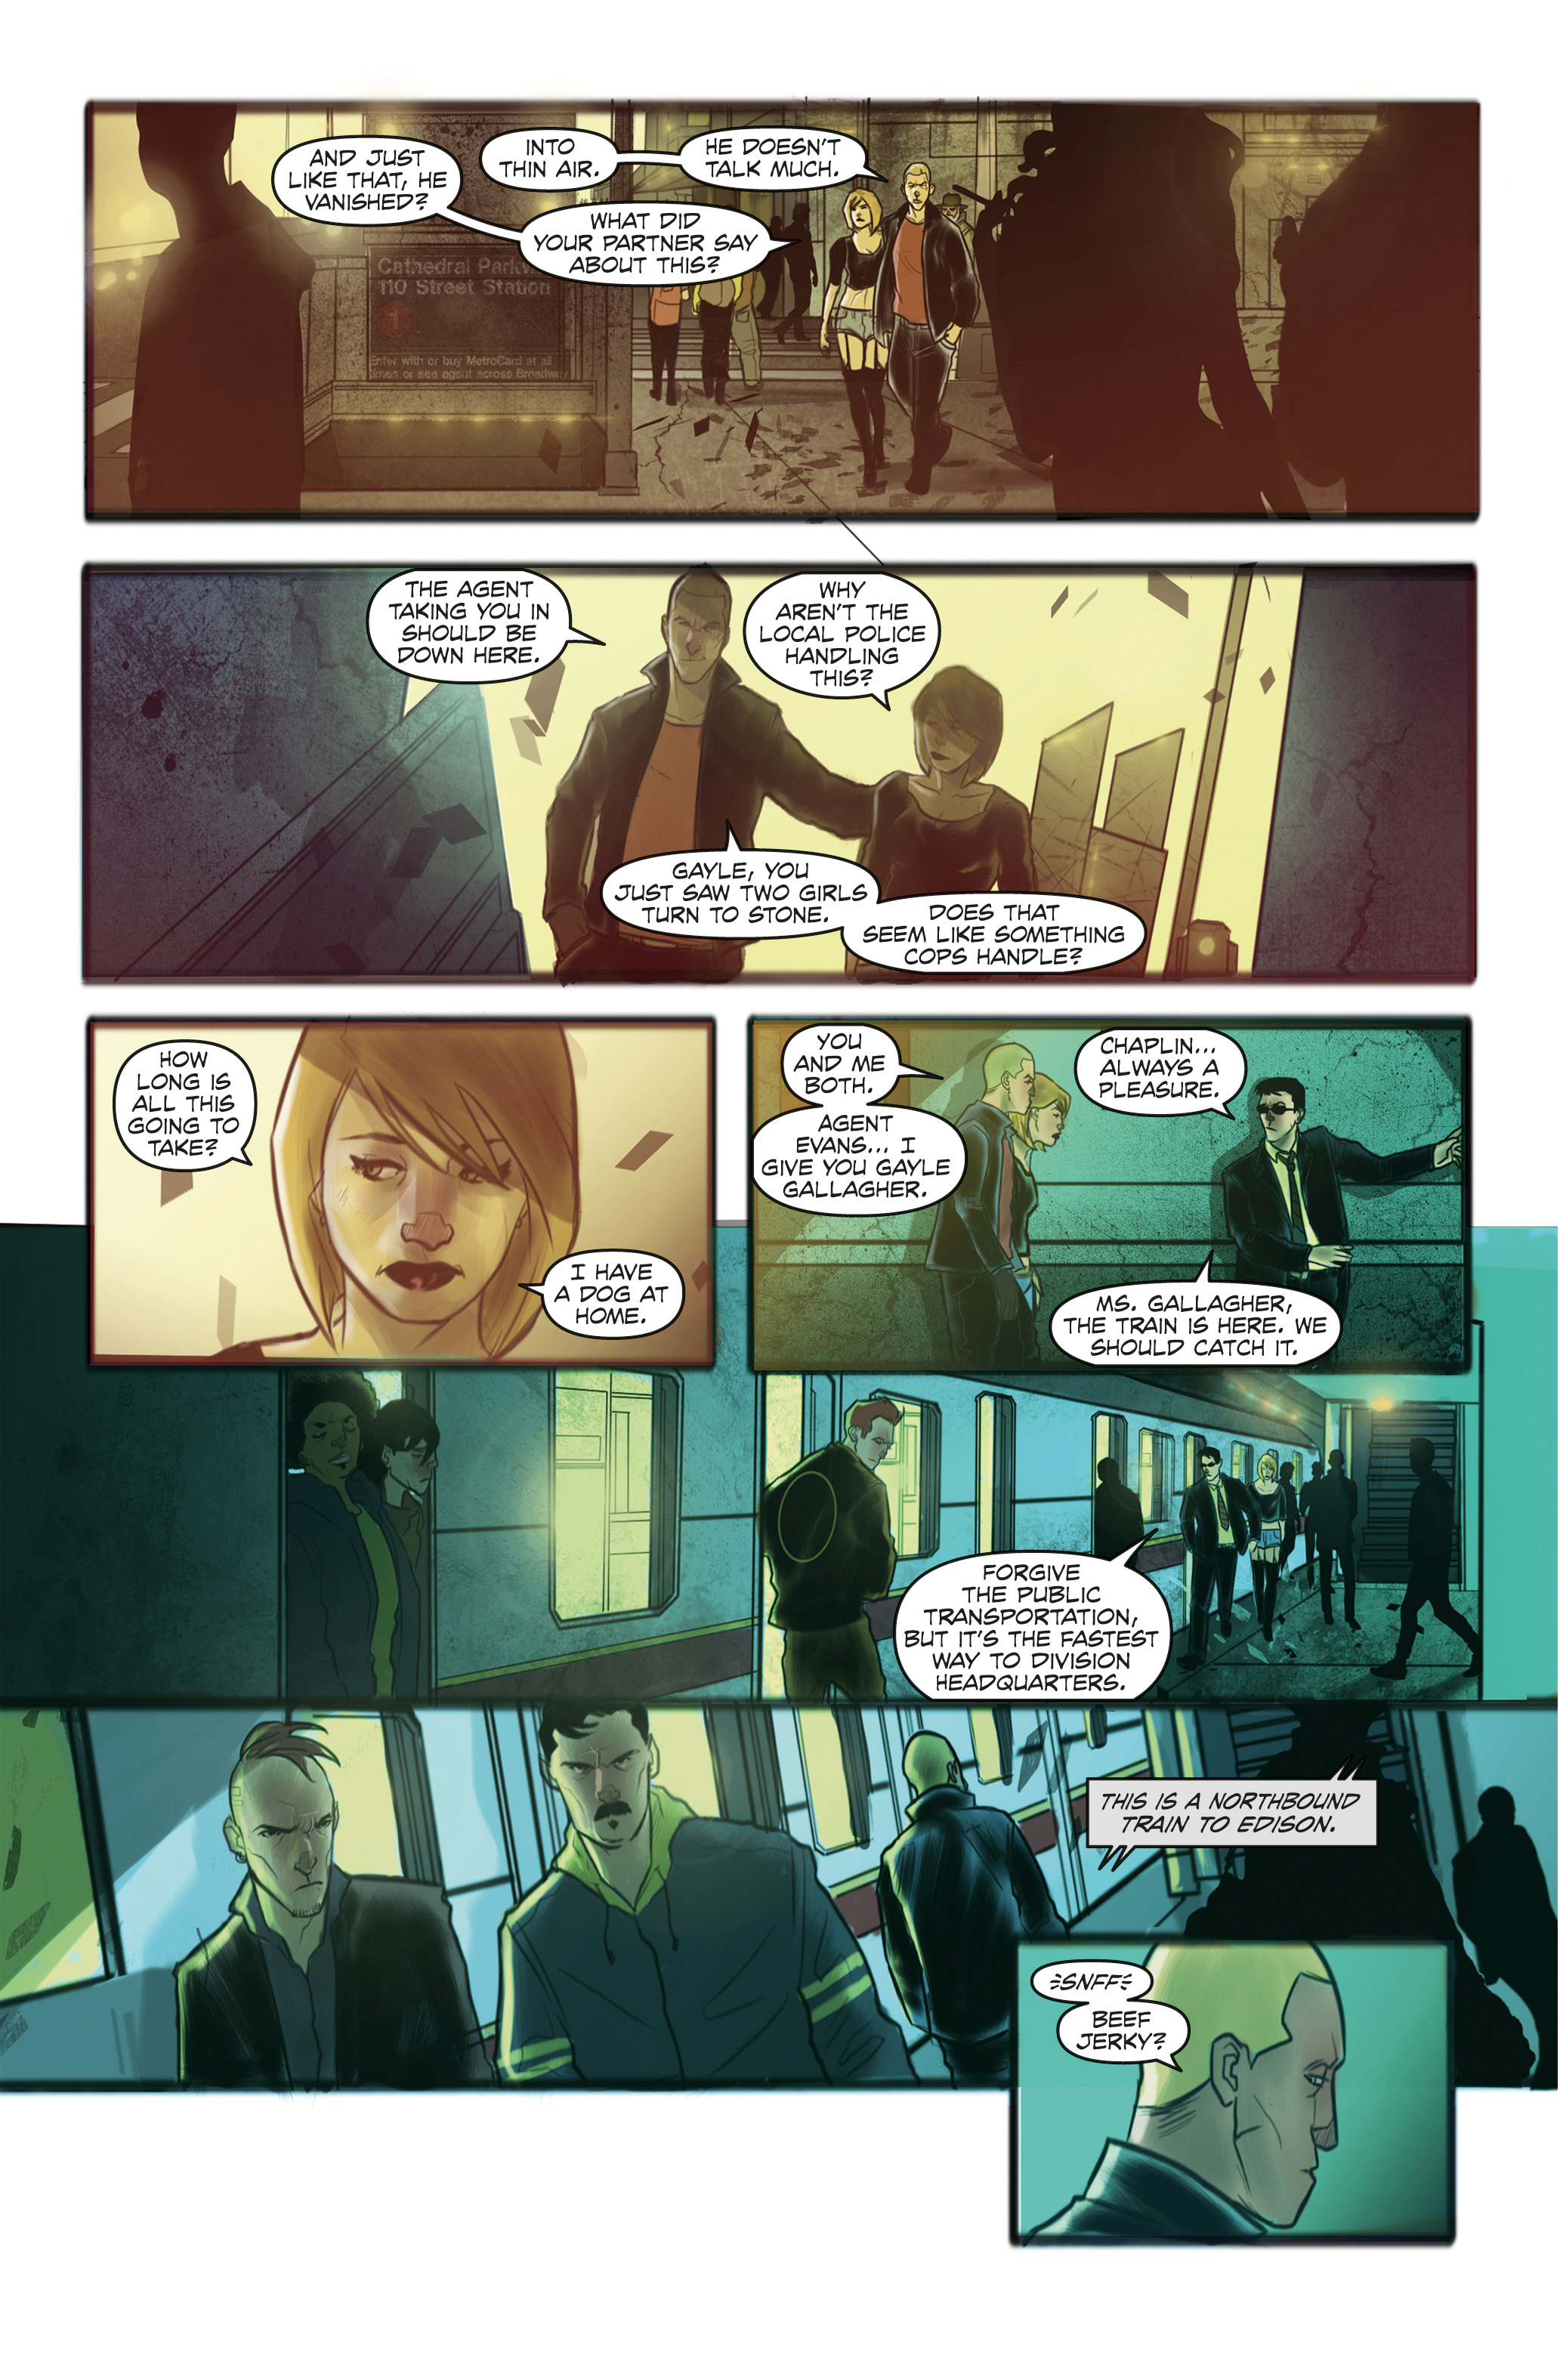 Shelter Division #1 Page 16-01.jpg